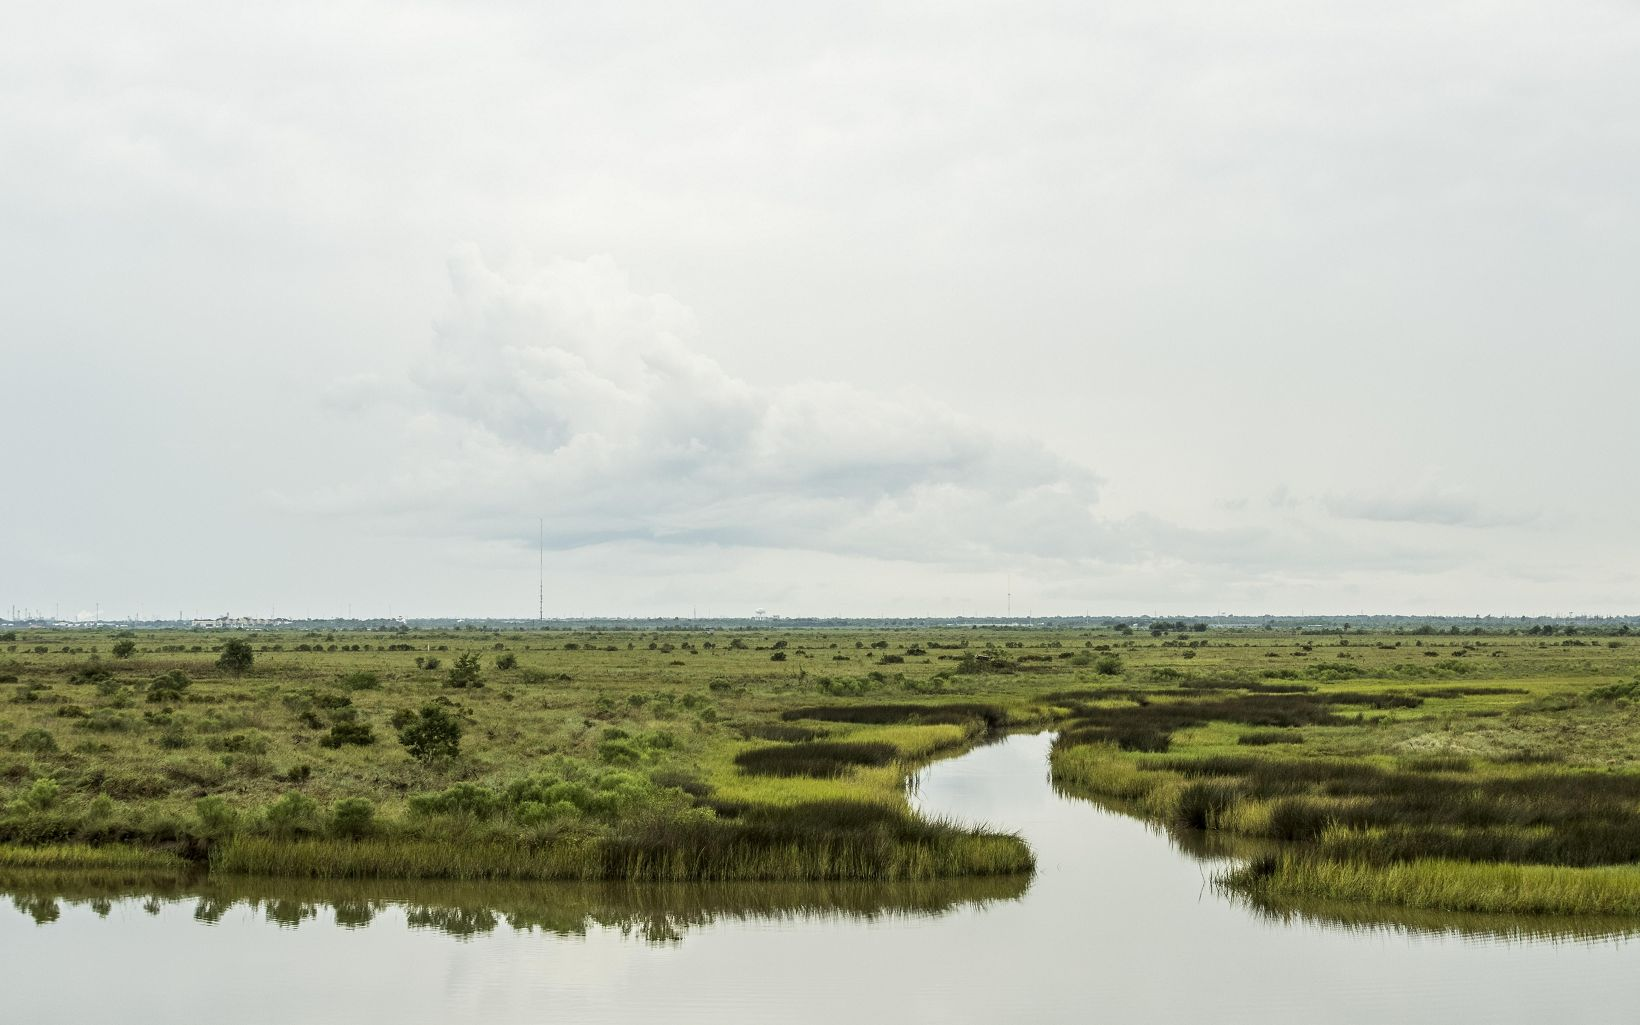 View of coastal prairie landscape, including green grasslands and water.